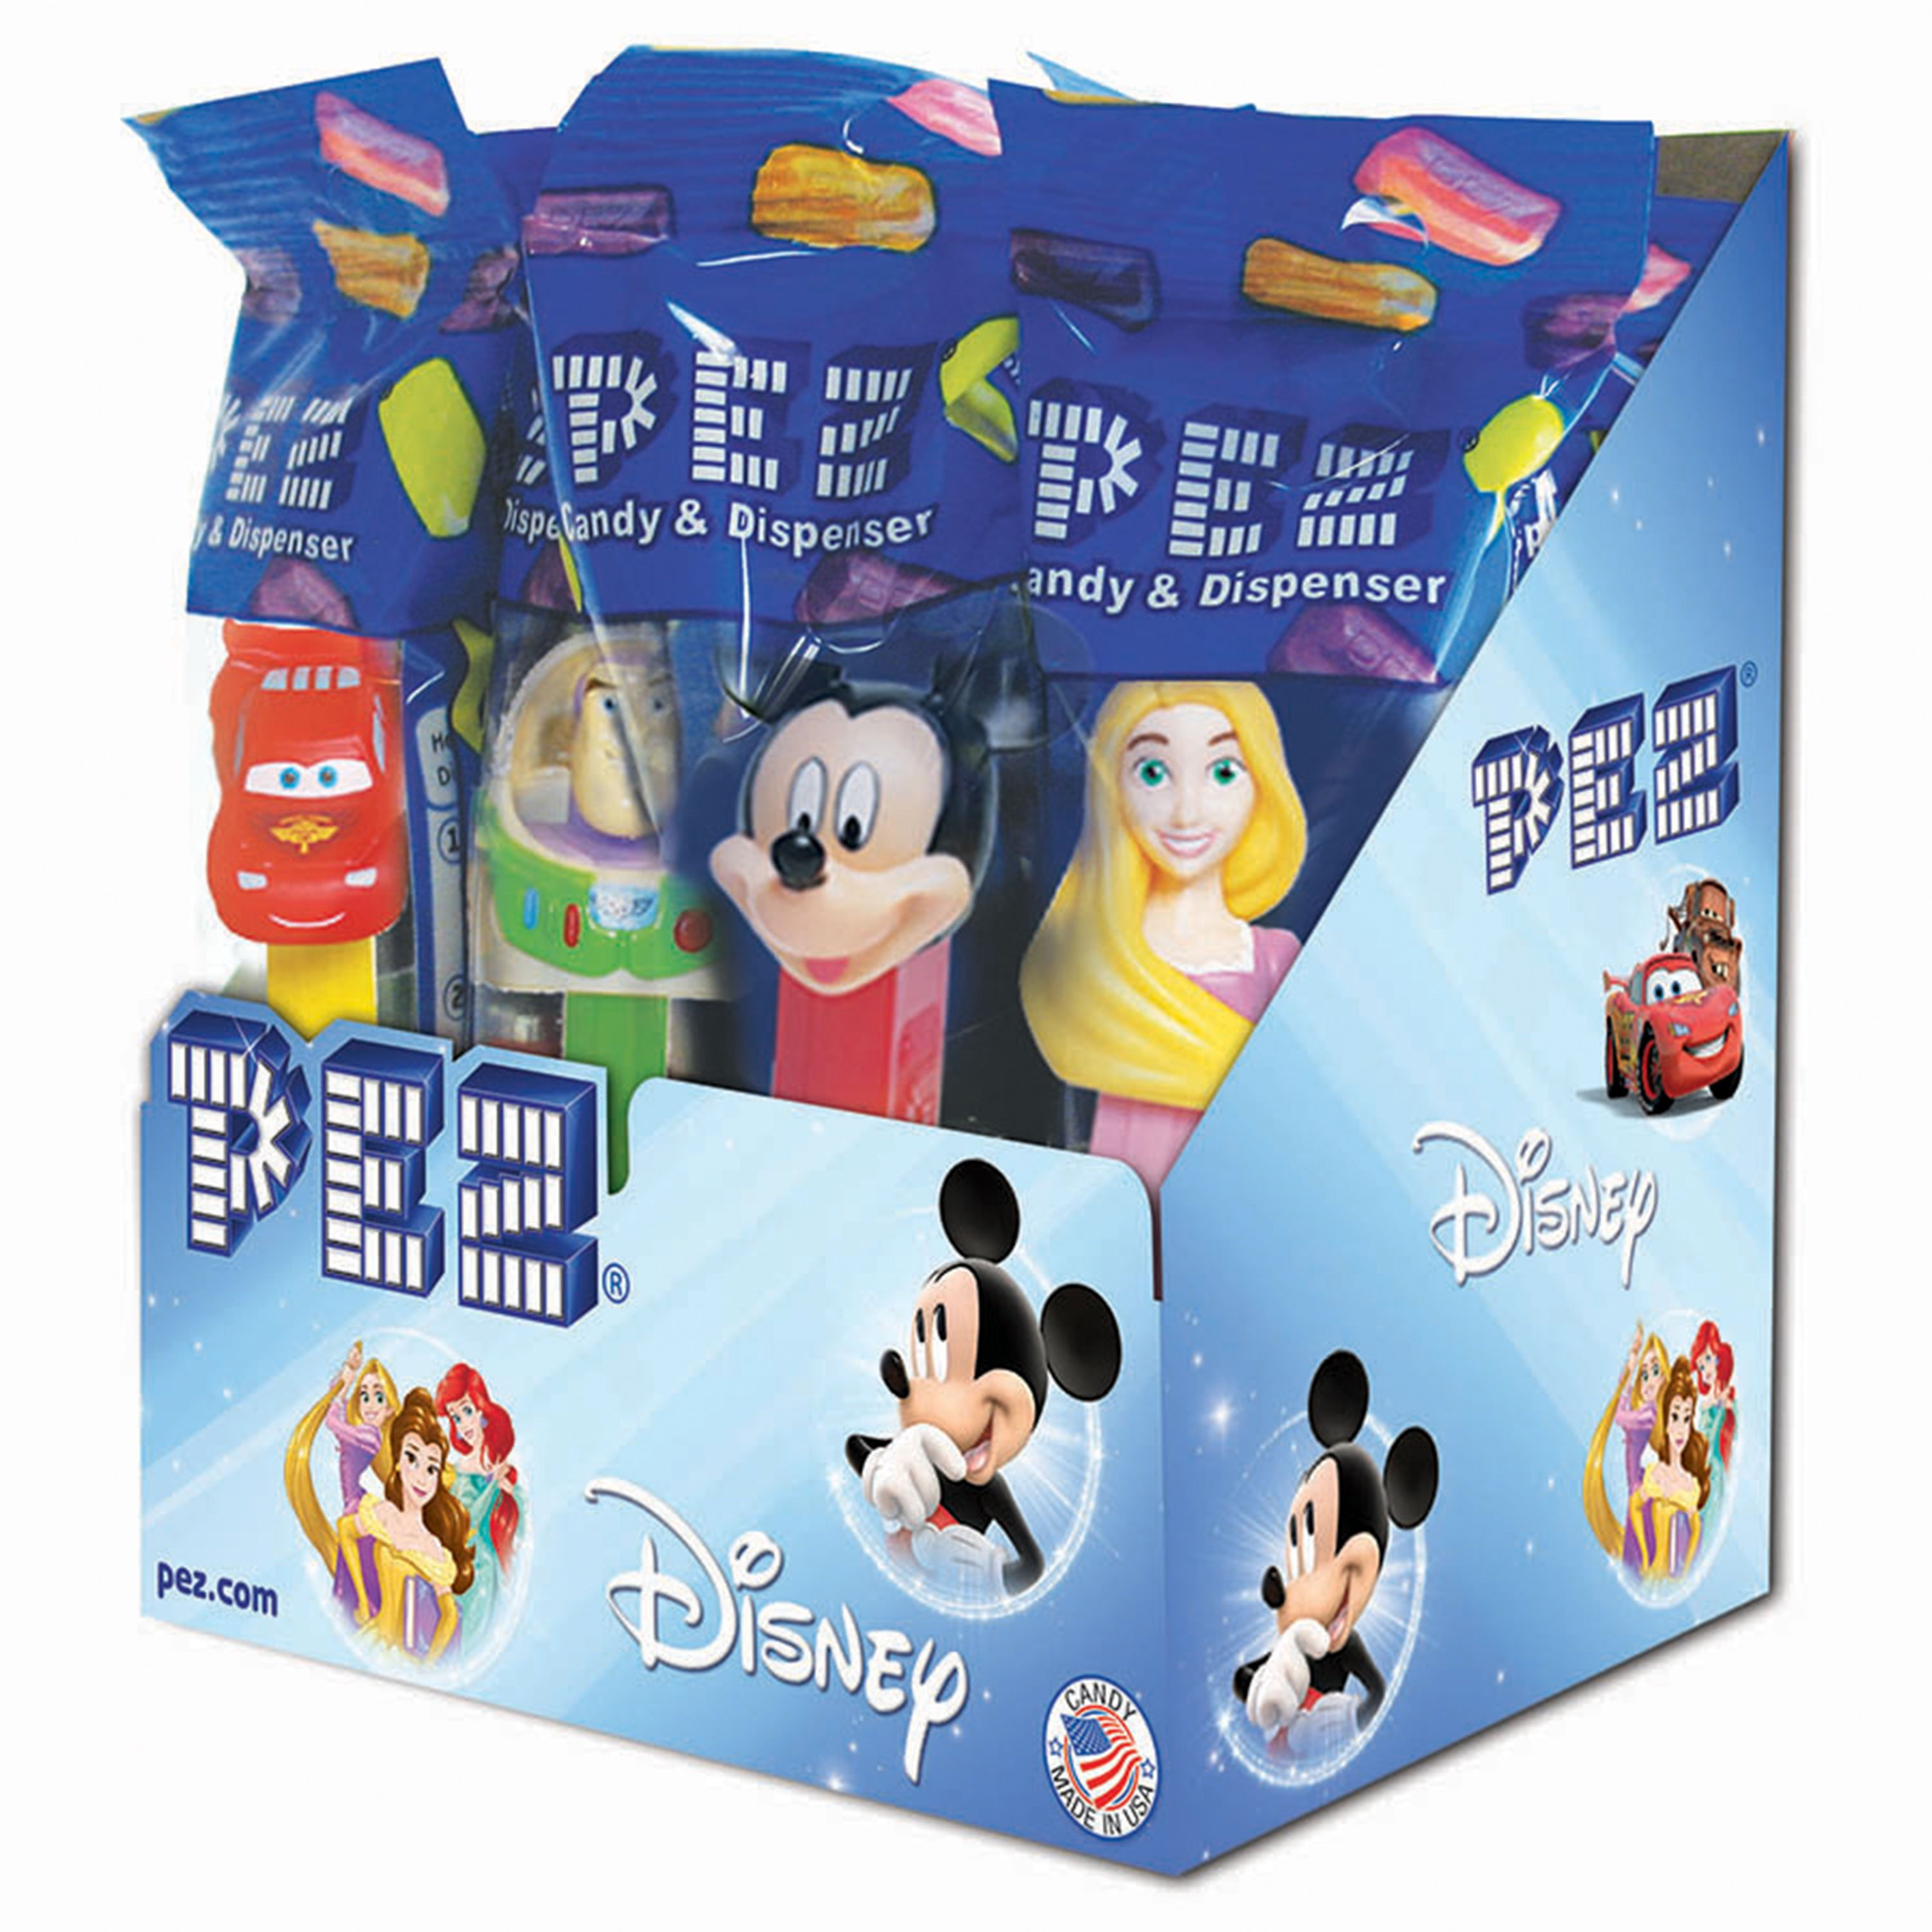 PEZ Candy Best of Disney/PIXAR Assortment, candy dispenser plus 2 rolls of assorted fruit candy, box of 12